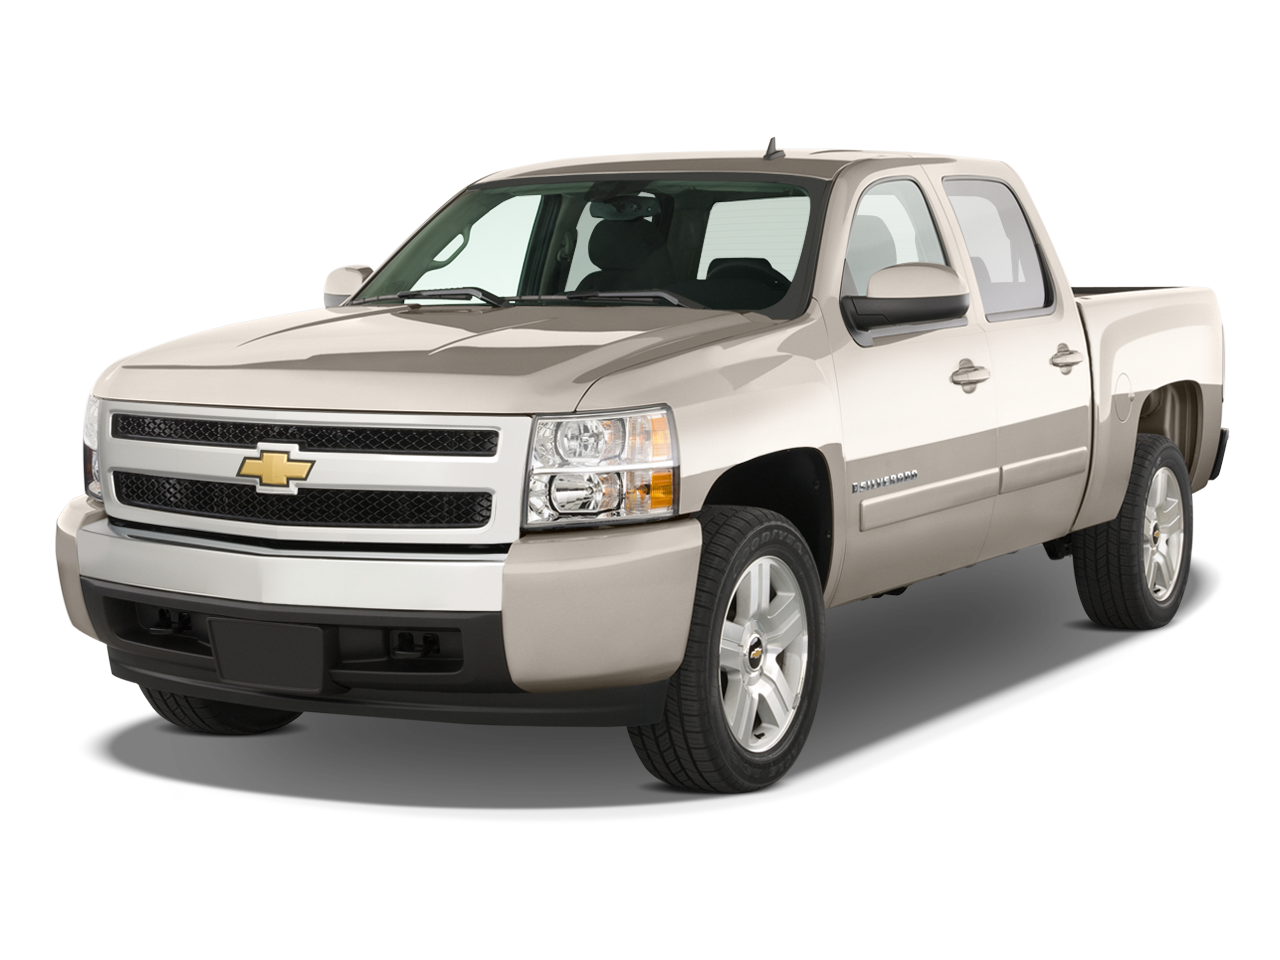 2009 chevrolet silverado hybrid chevy hybrid pickup truck review automobile magazine. Black Bedroom Furniture Sets. Home Design Ideas